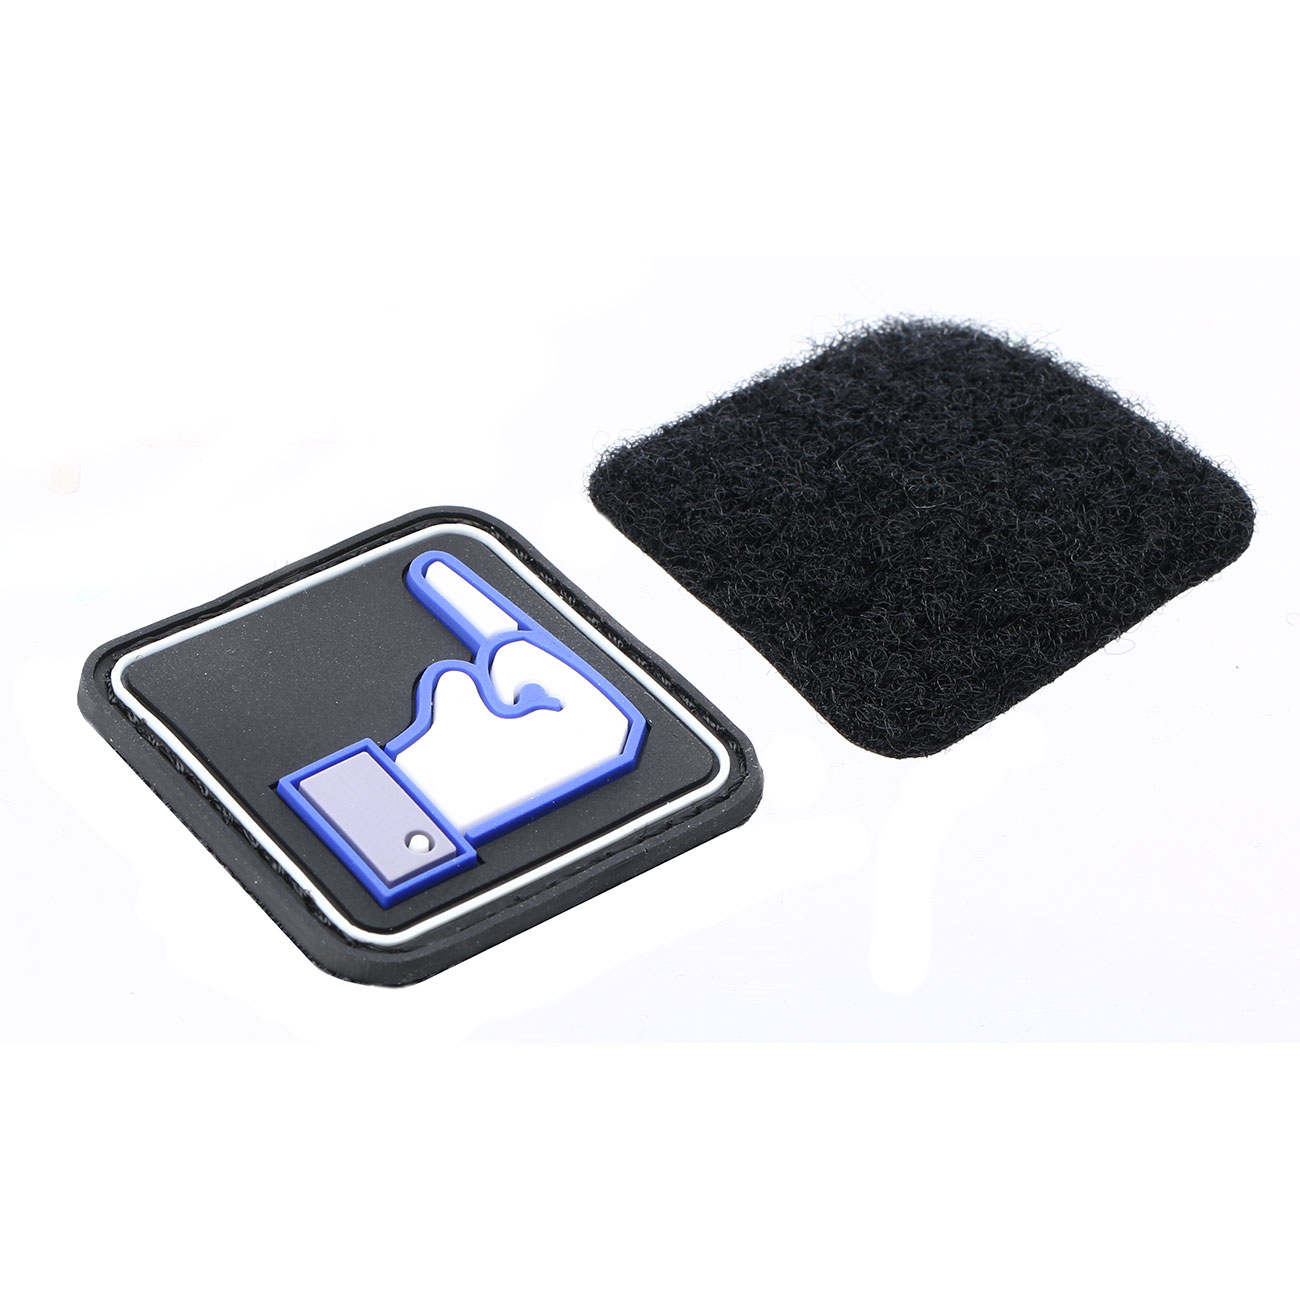 3D Rubber Patch Dislike 2